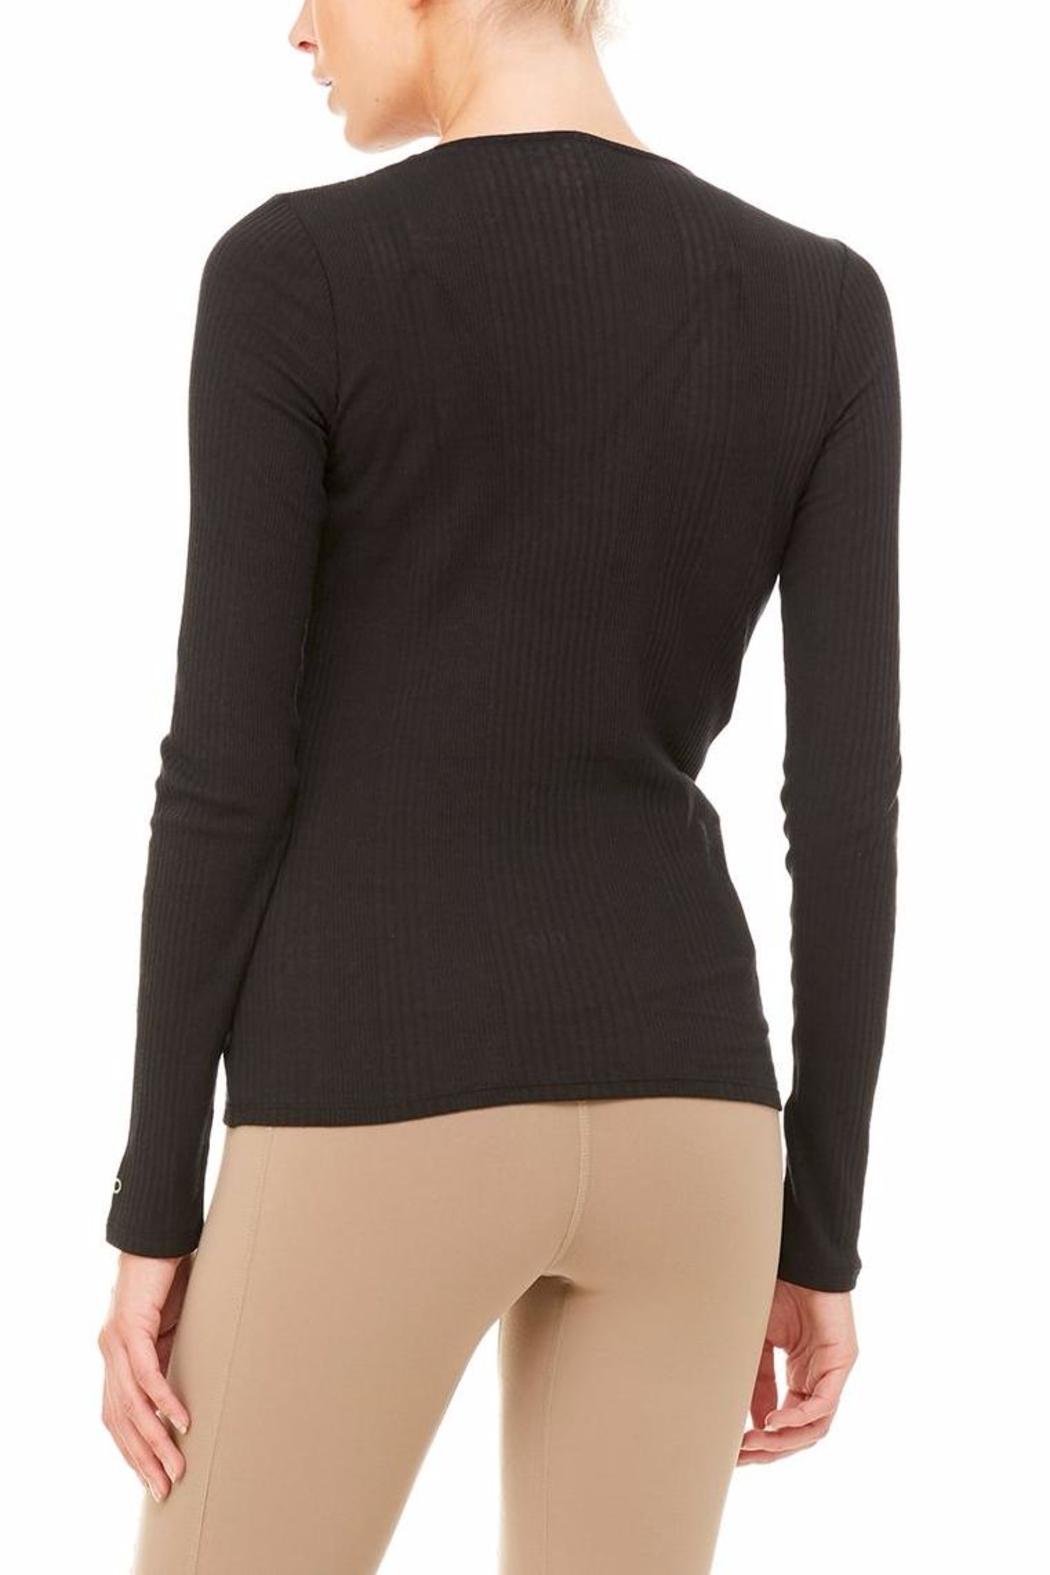 ALO Yoga Interlace Long Sleeve Top - Side Cropped Image